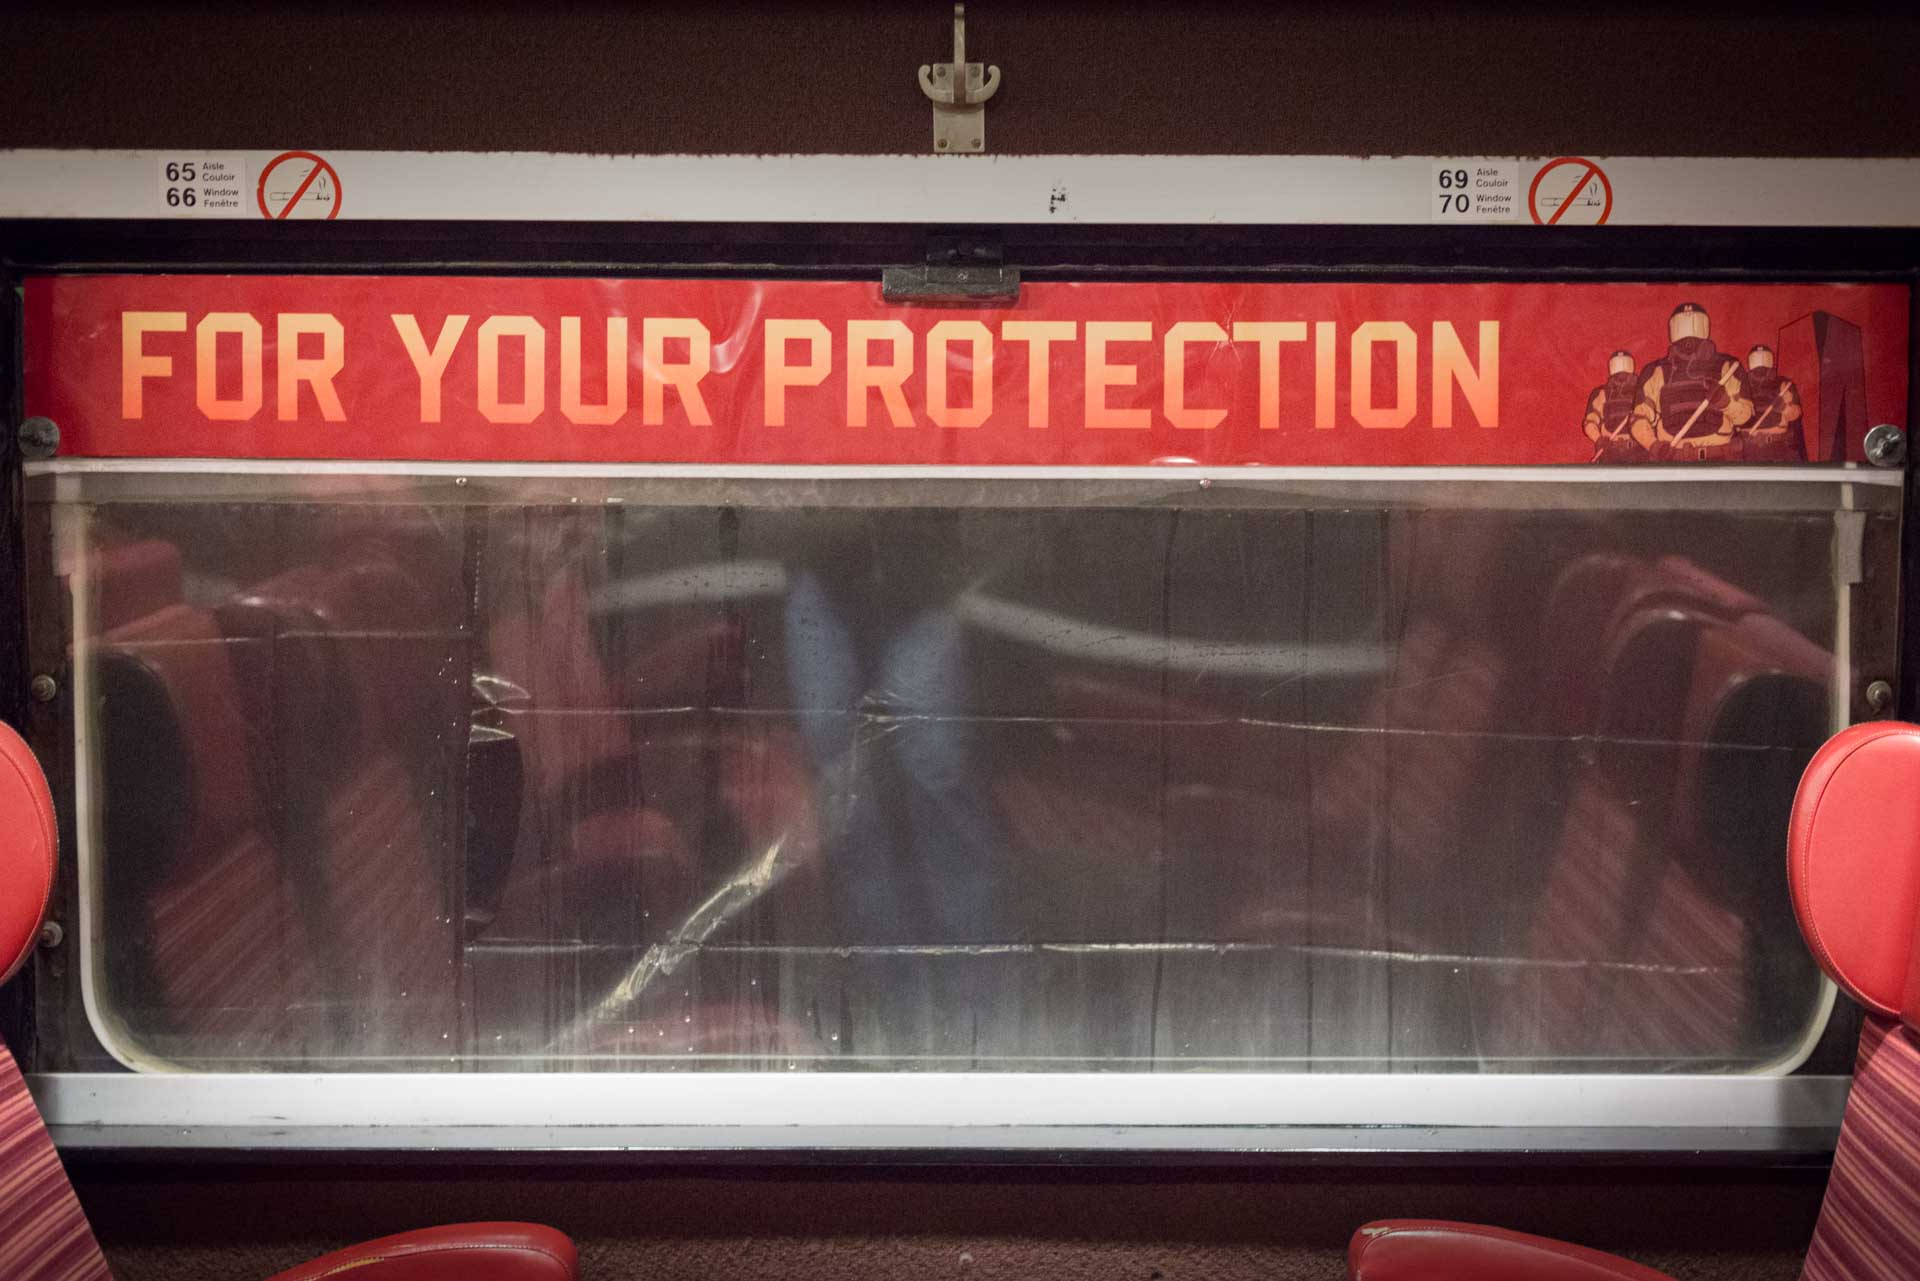 592foryourprotection